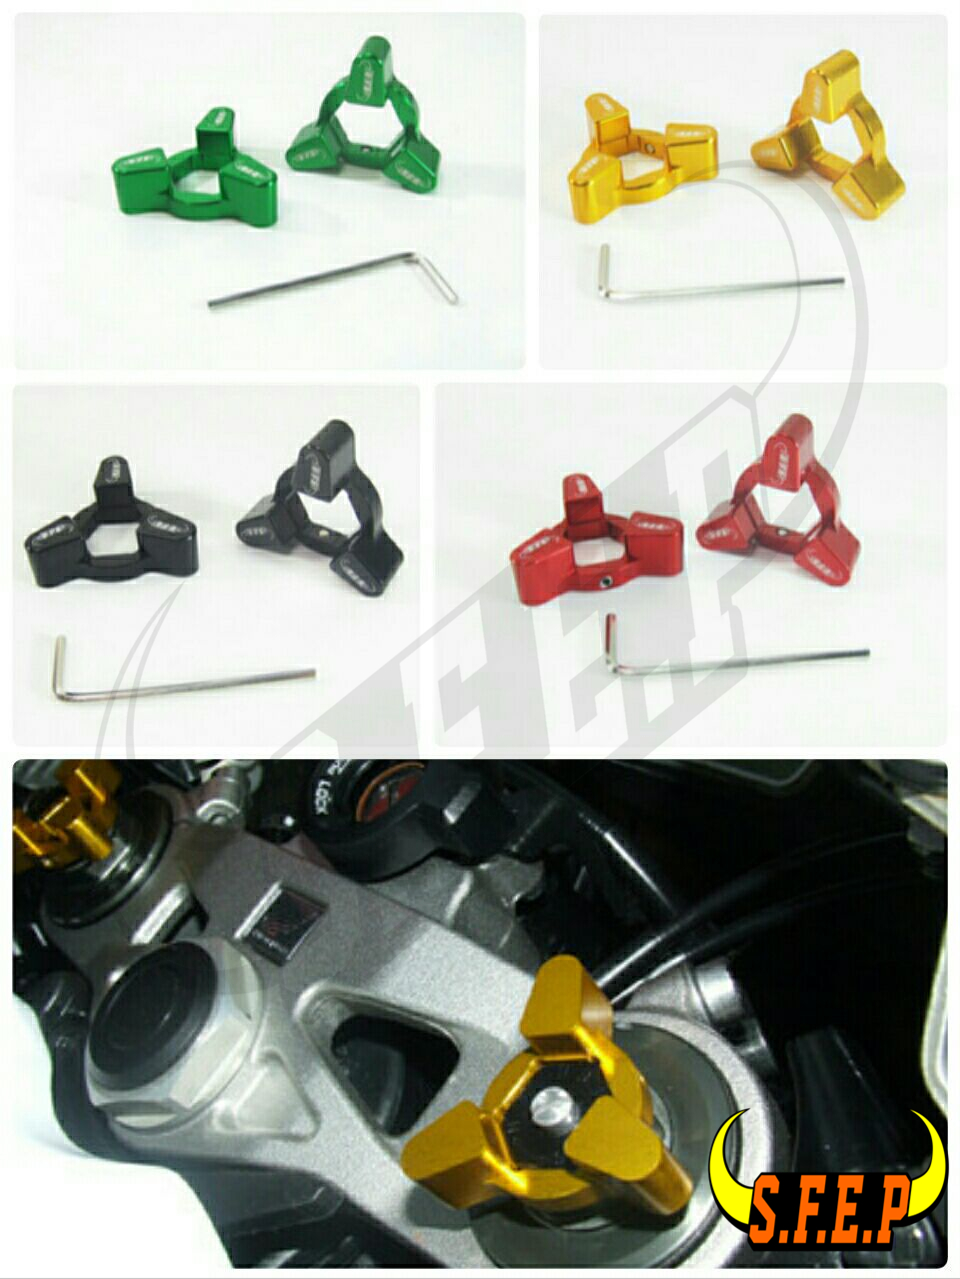 Motorcycle CNC Fork Preload Adjusters For Kawasaki ZX636R 05-06/ Z1000 03-06/ ZXR400 All Years/ NINJA 650R (ER-6f/ER-6n) 06-08